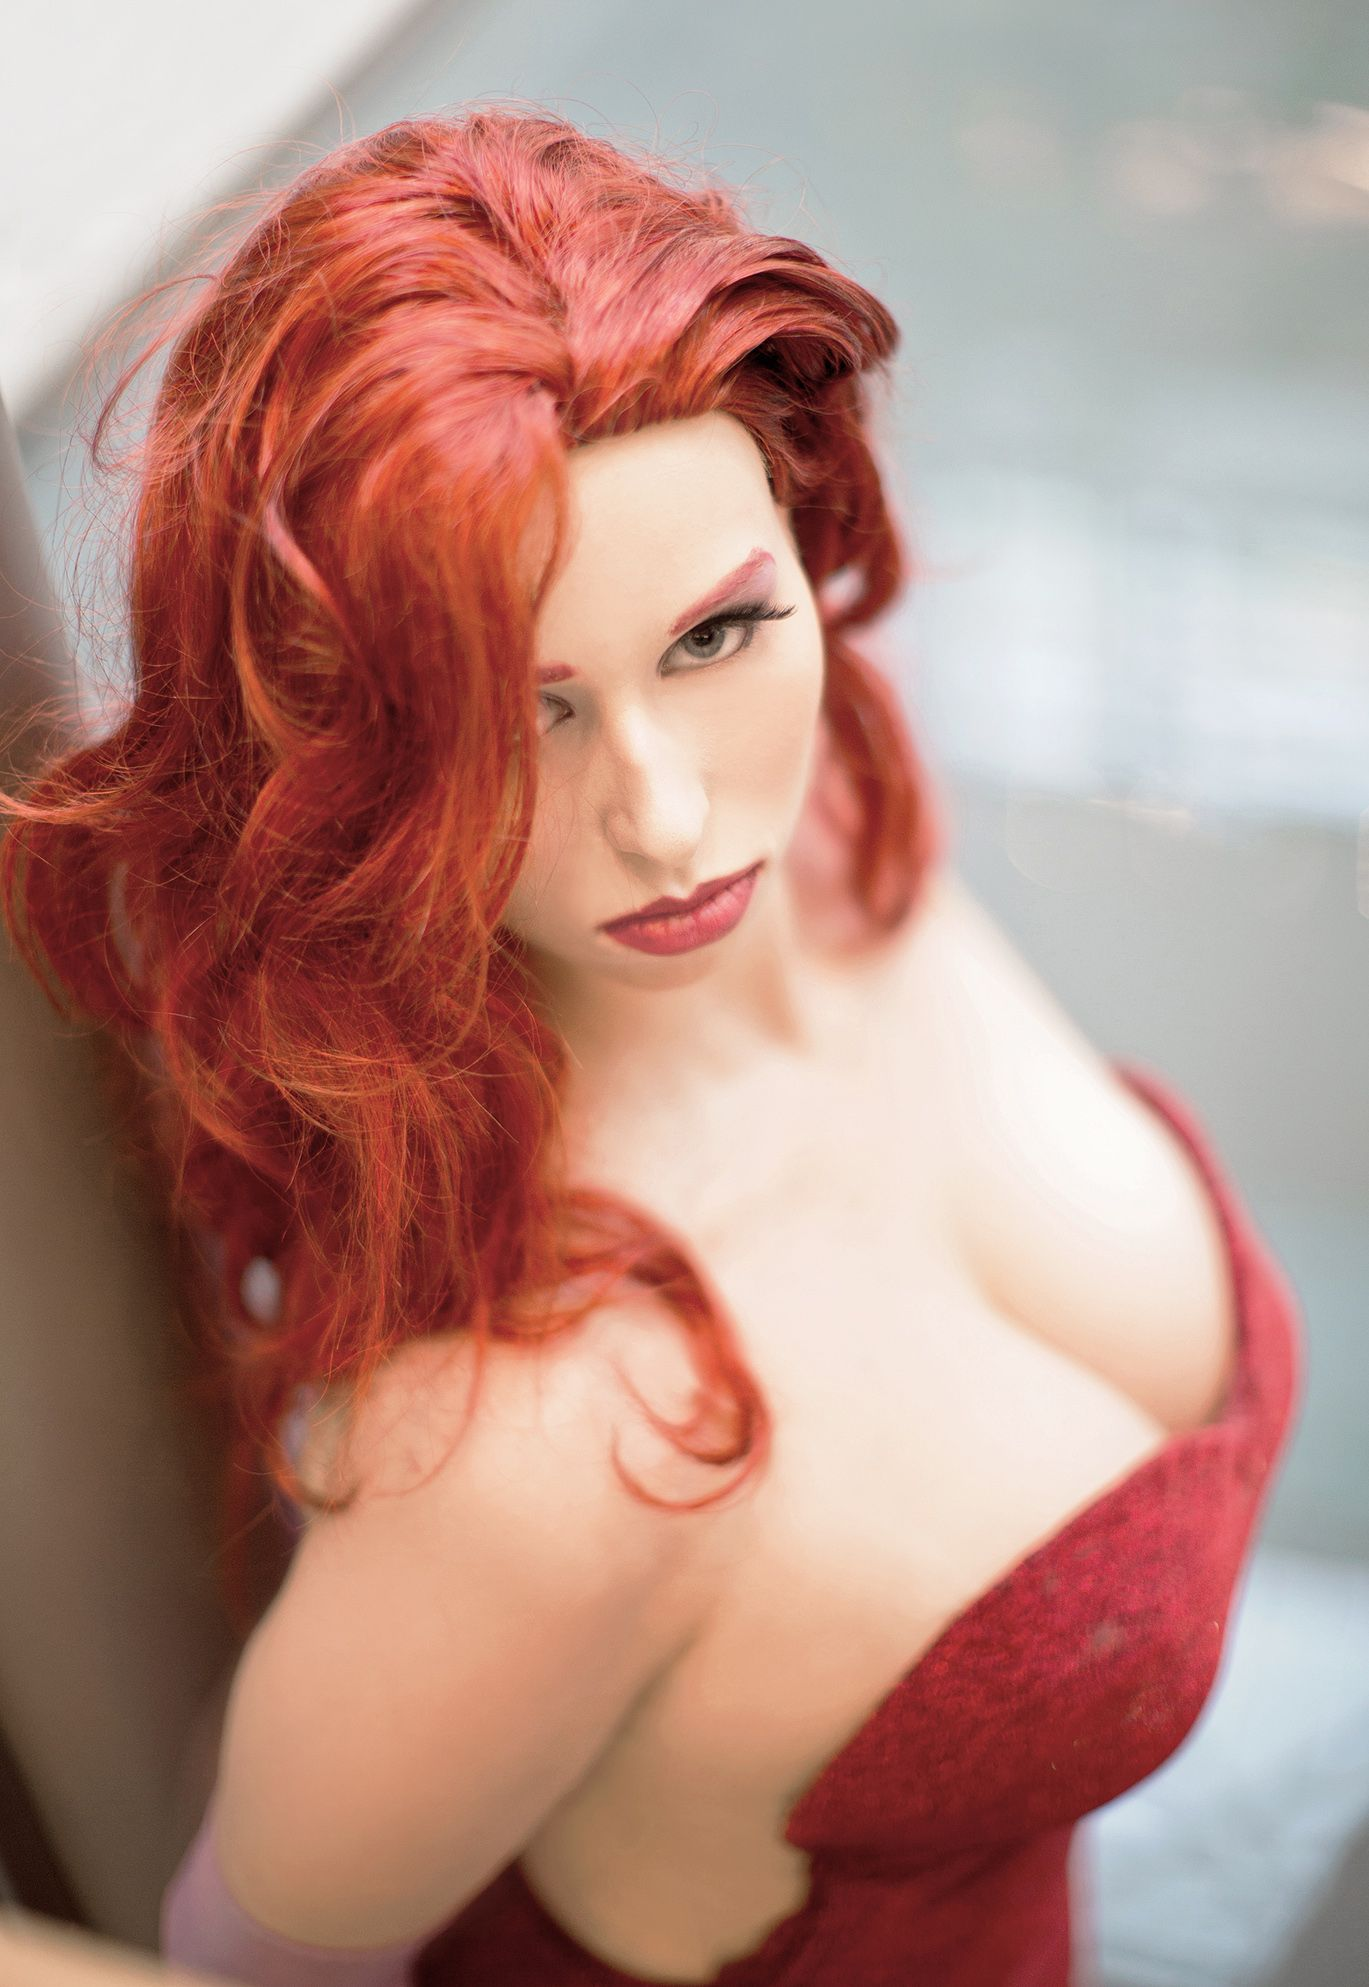 Hot Gaze By Mkuegleriantart On Deviantart Red Hair